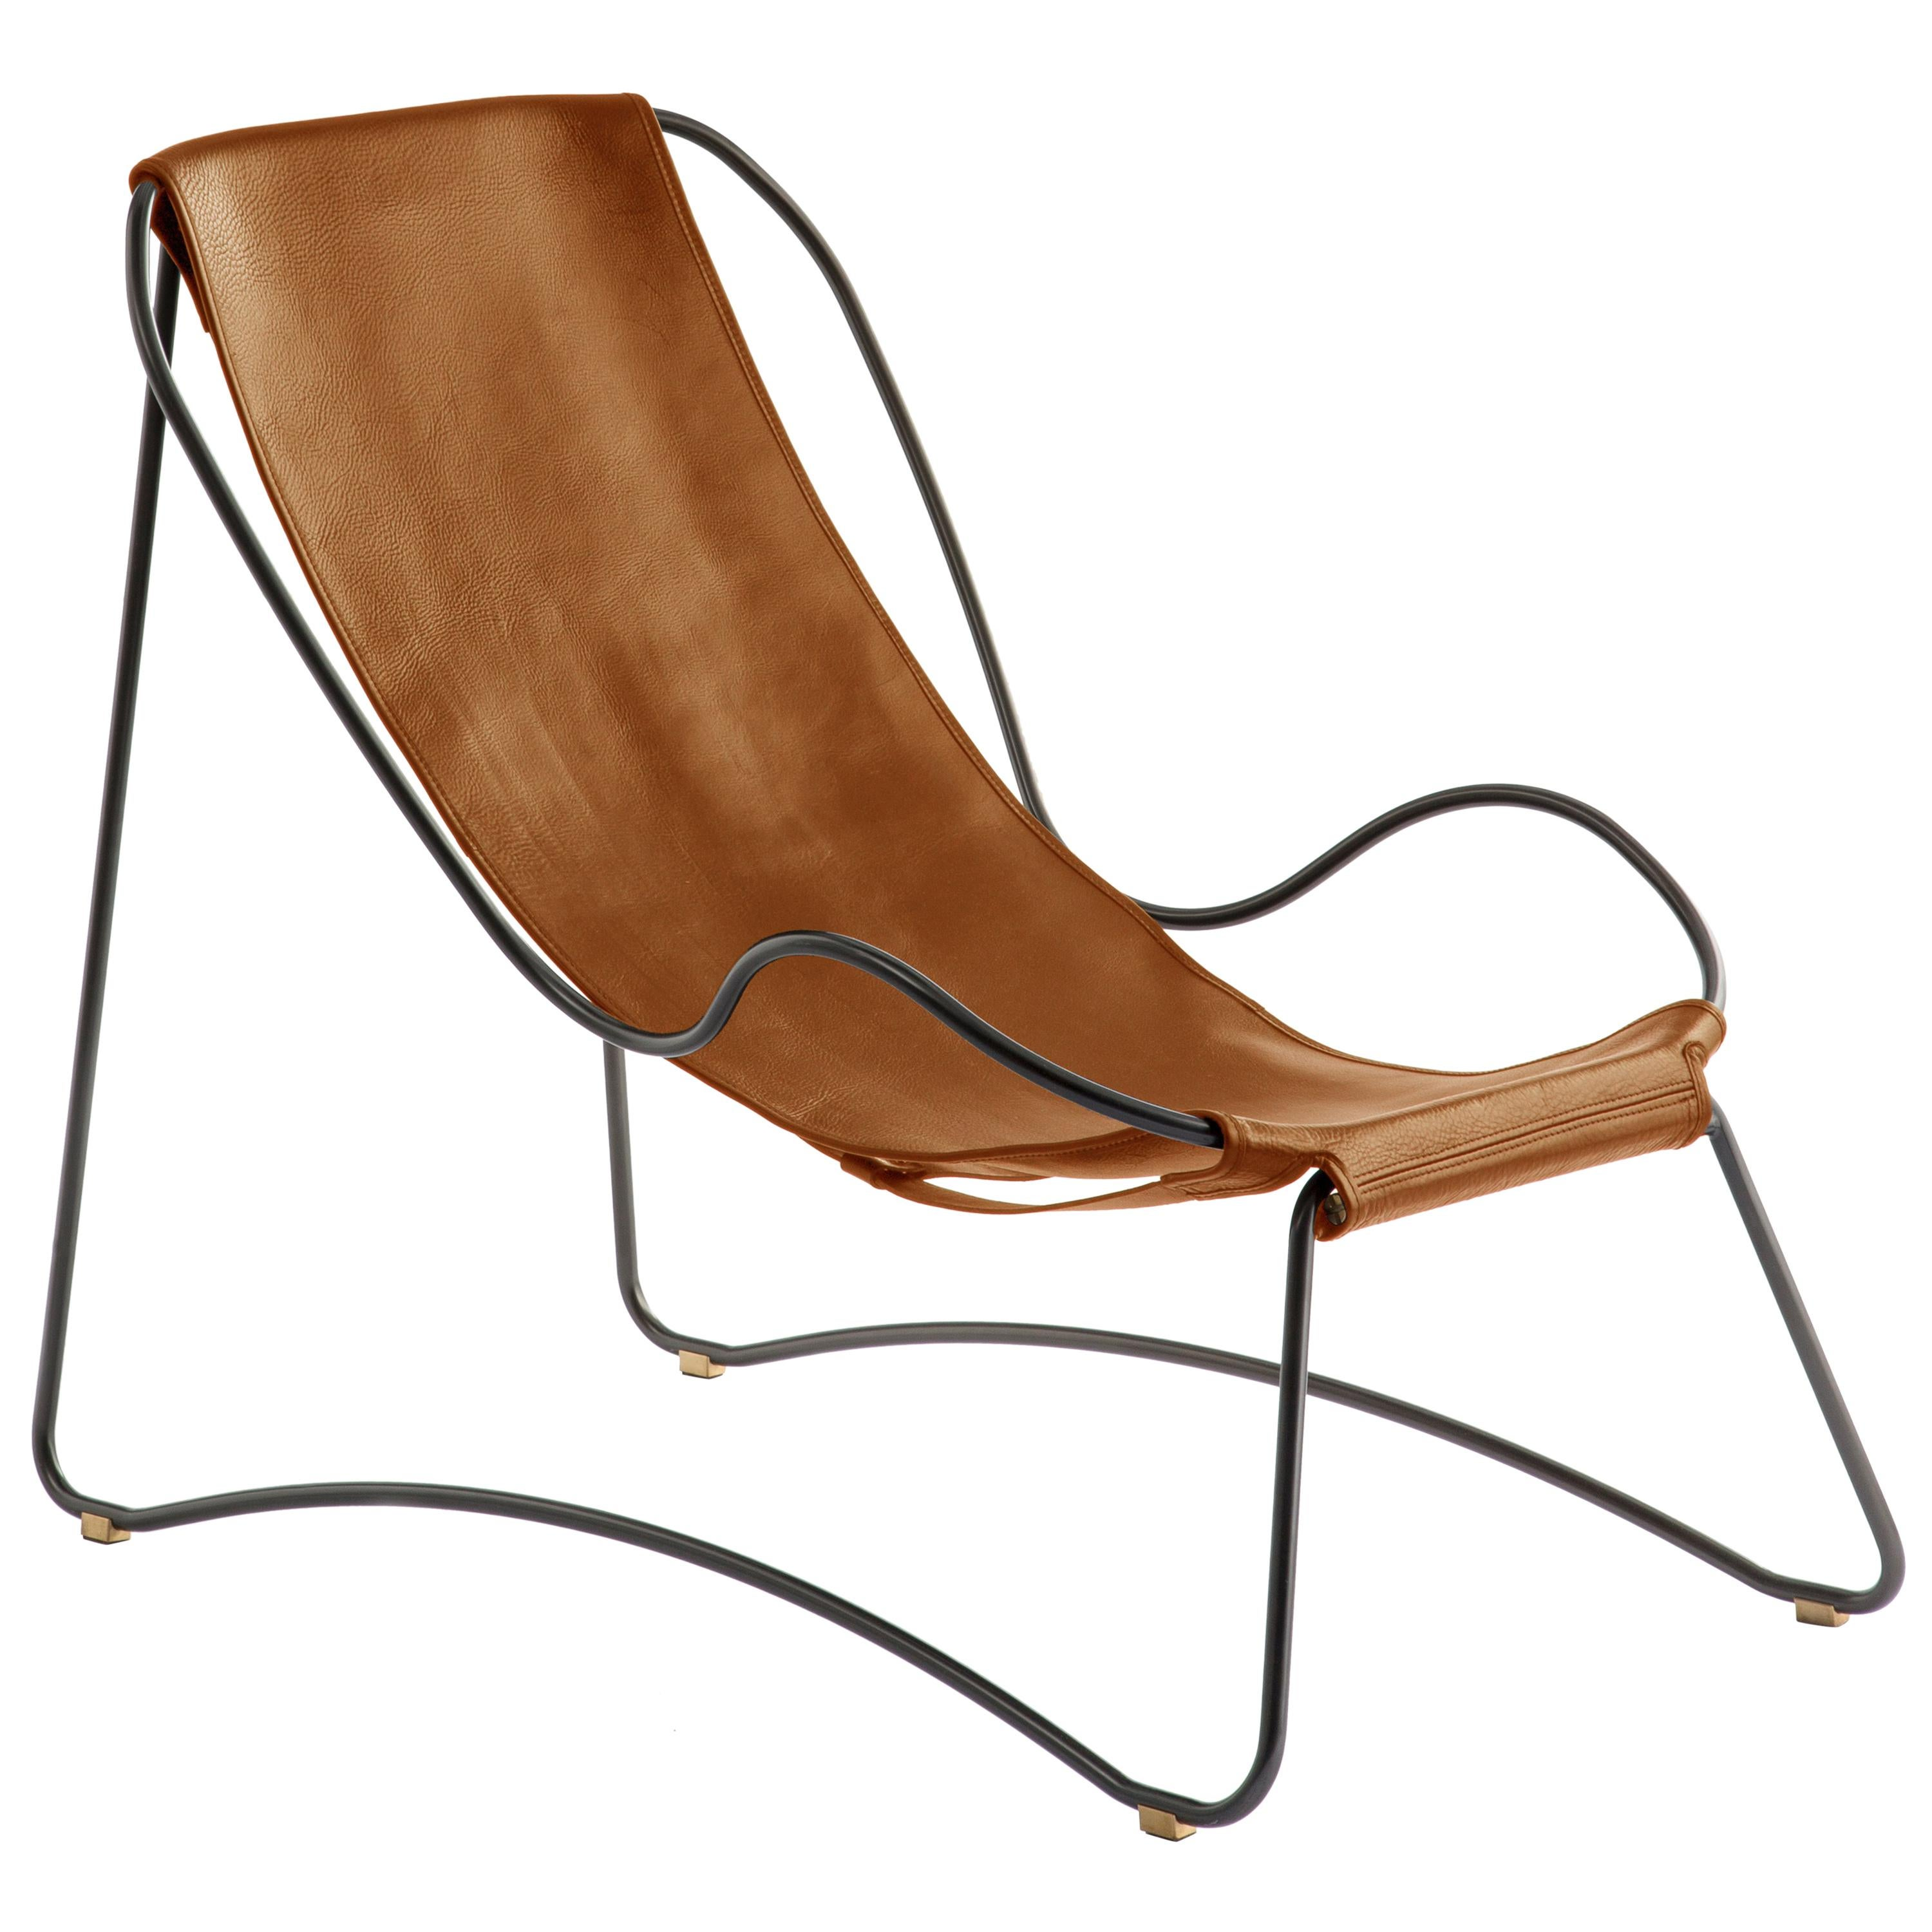 Chaise Longue , Black Smoke Steel and Natural Tobacco Leather